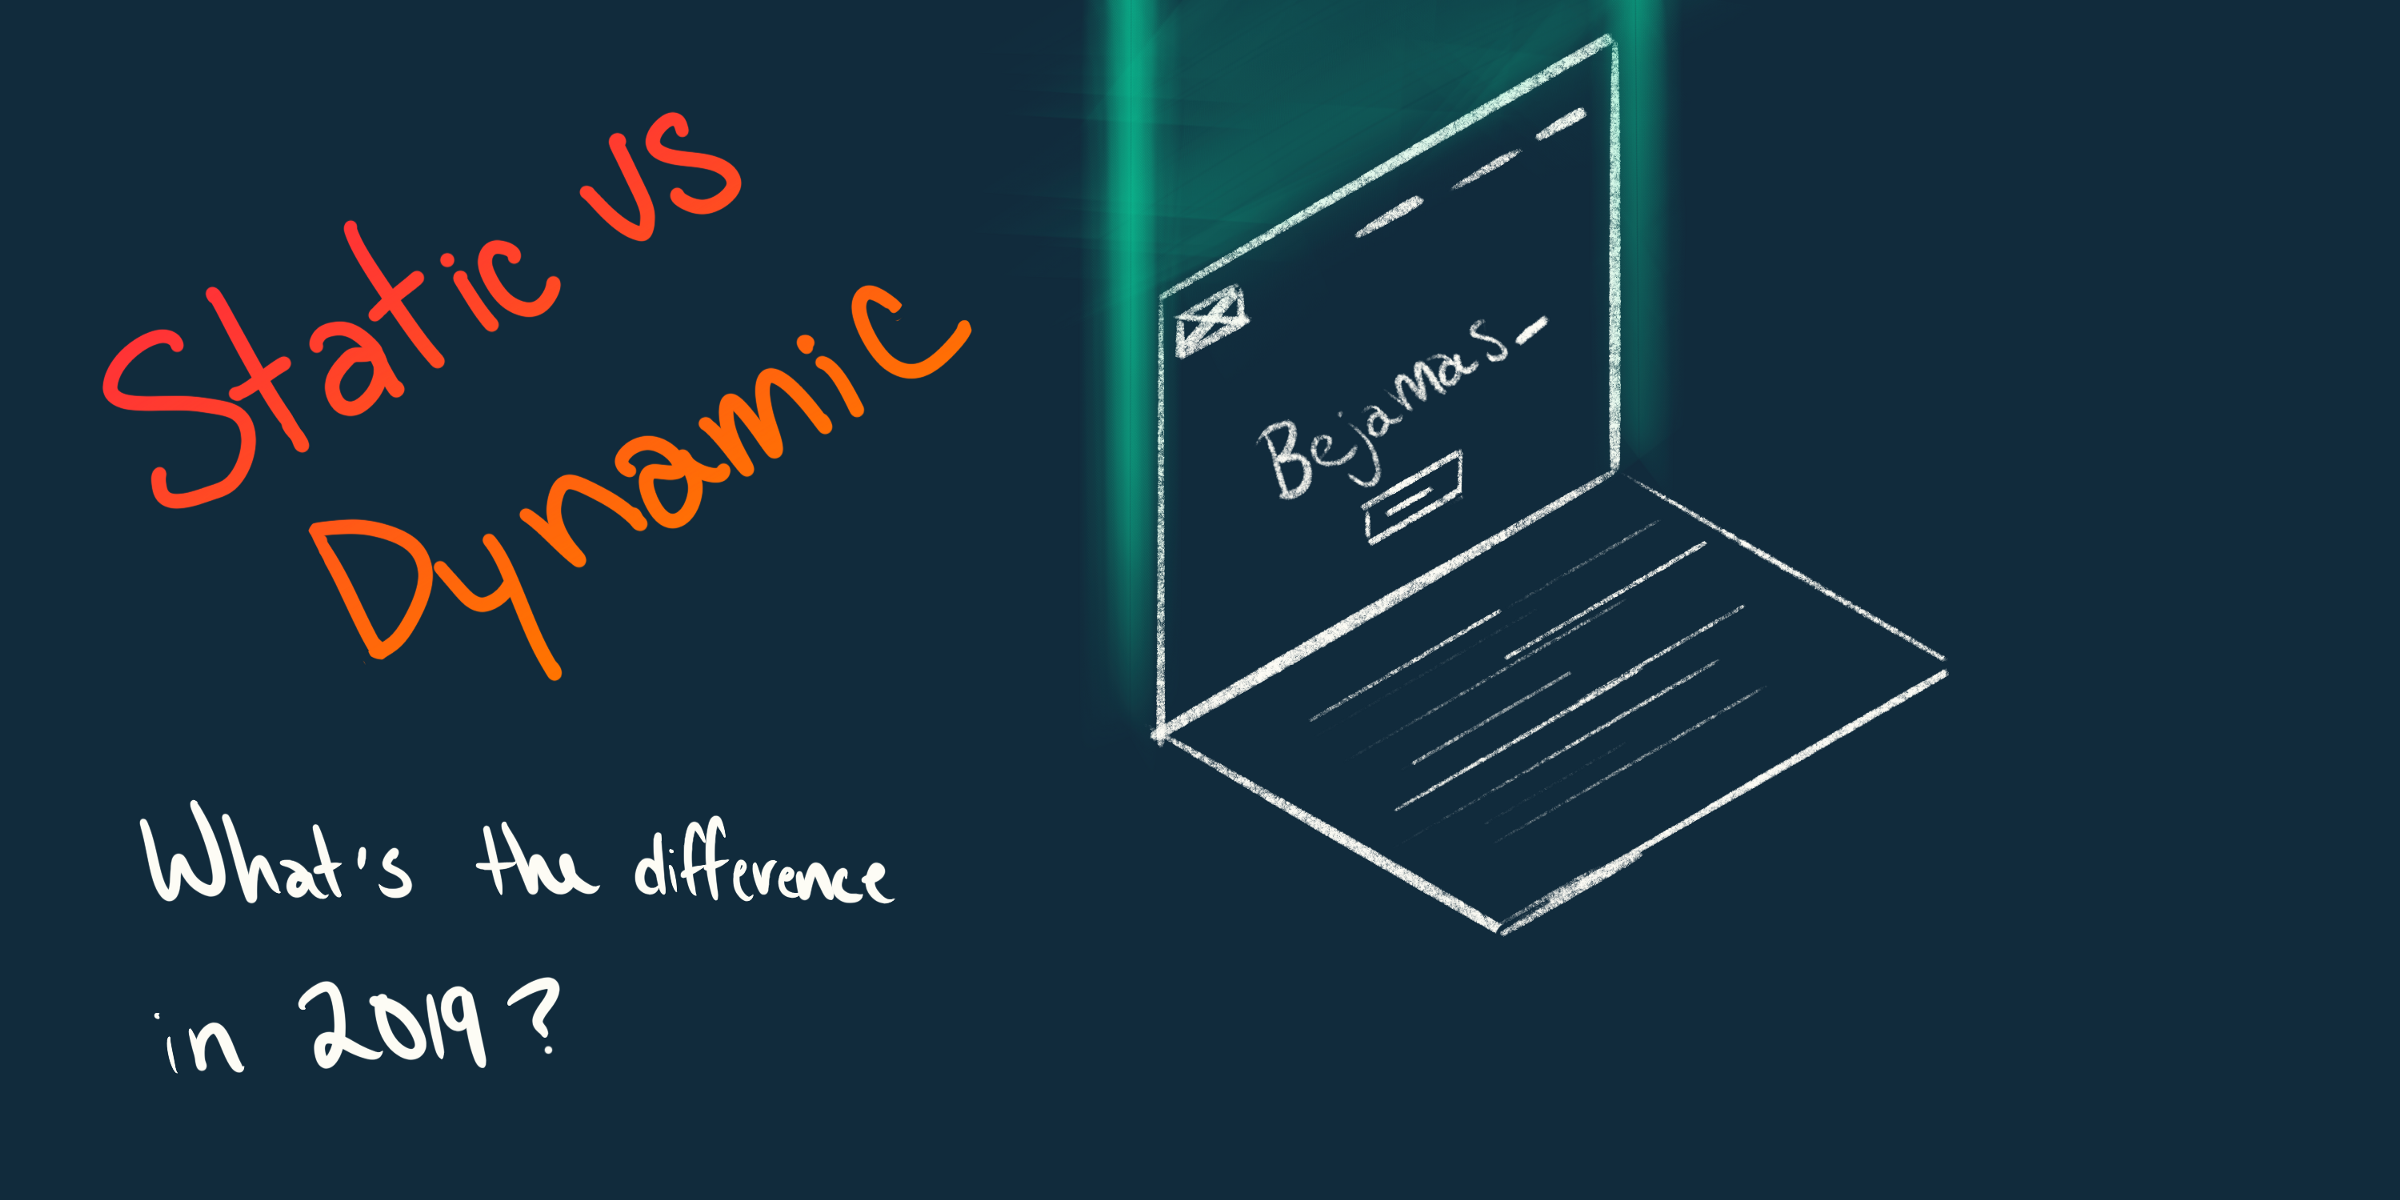 /static-vs-dynamic-website-whats-the-difference-in-2019-327064bfd4a9 feature image